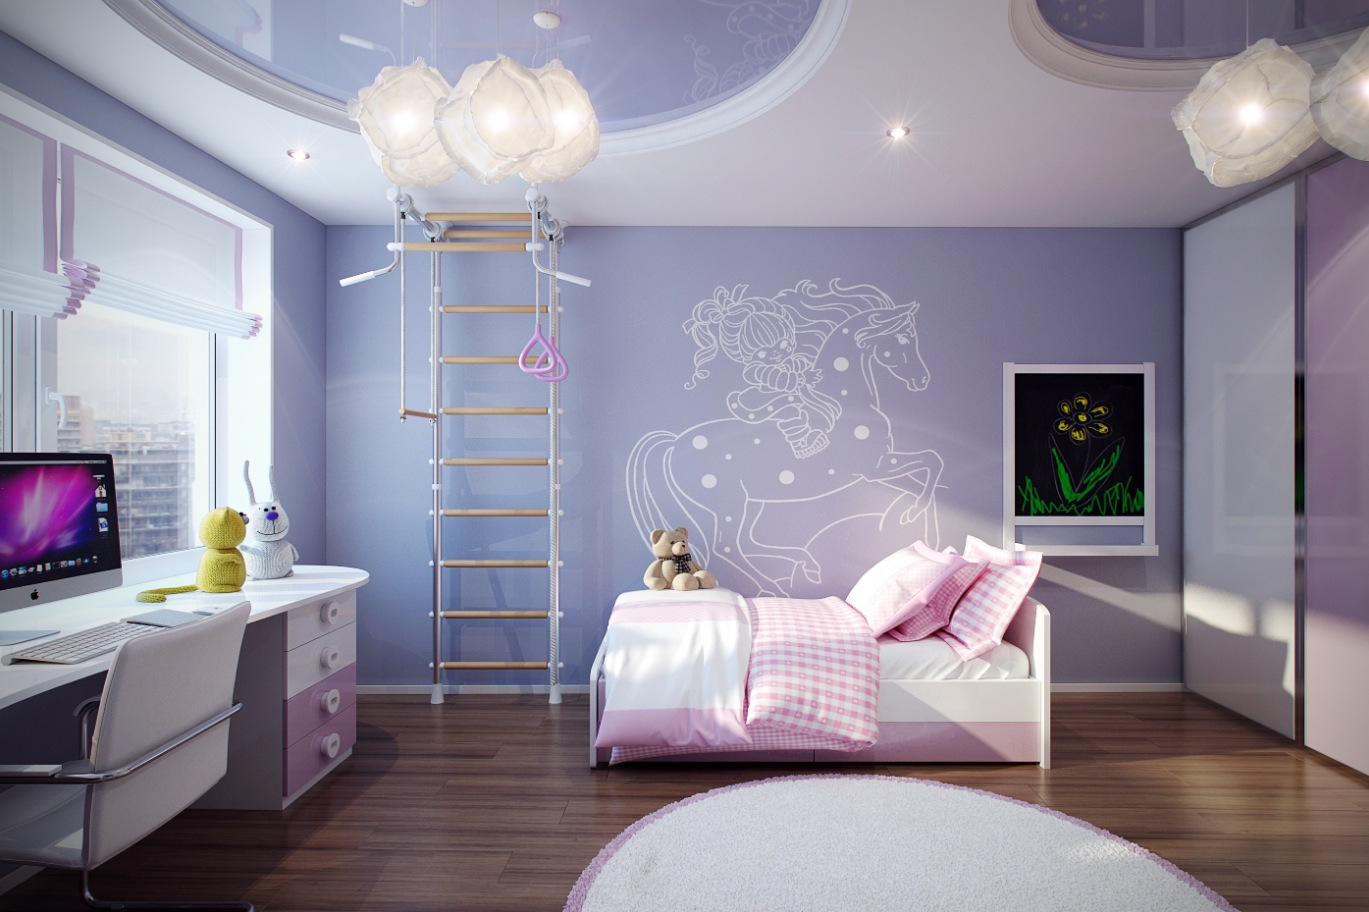 Casting Color Over Kids Rooms on Room Girl  id=62830